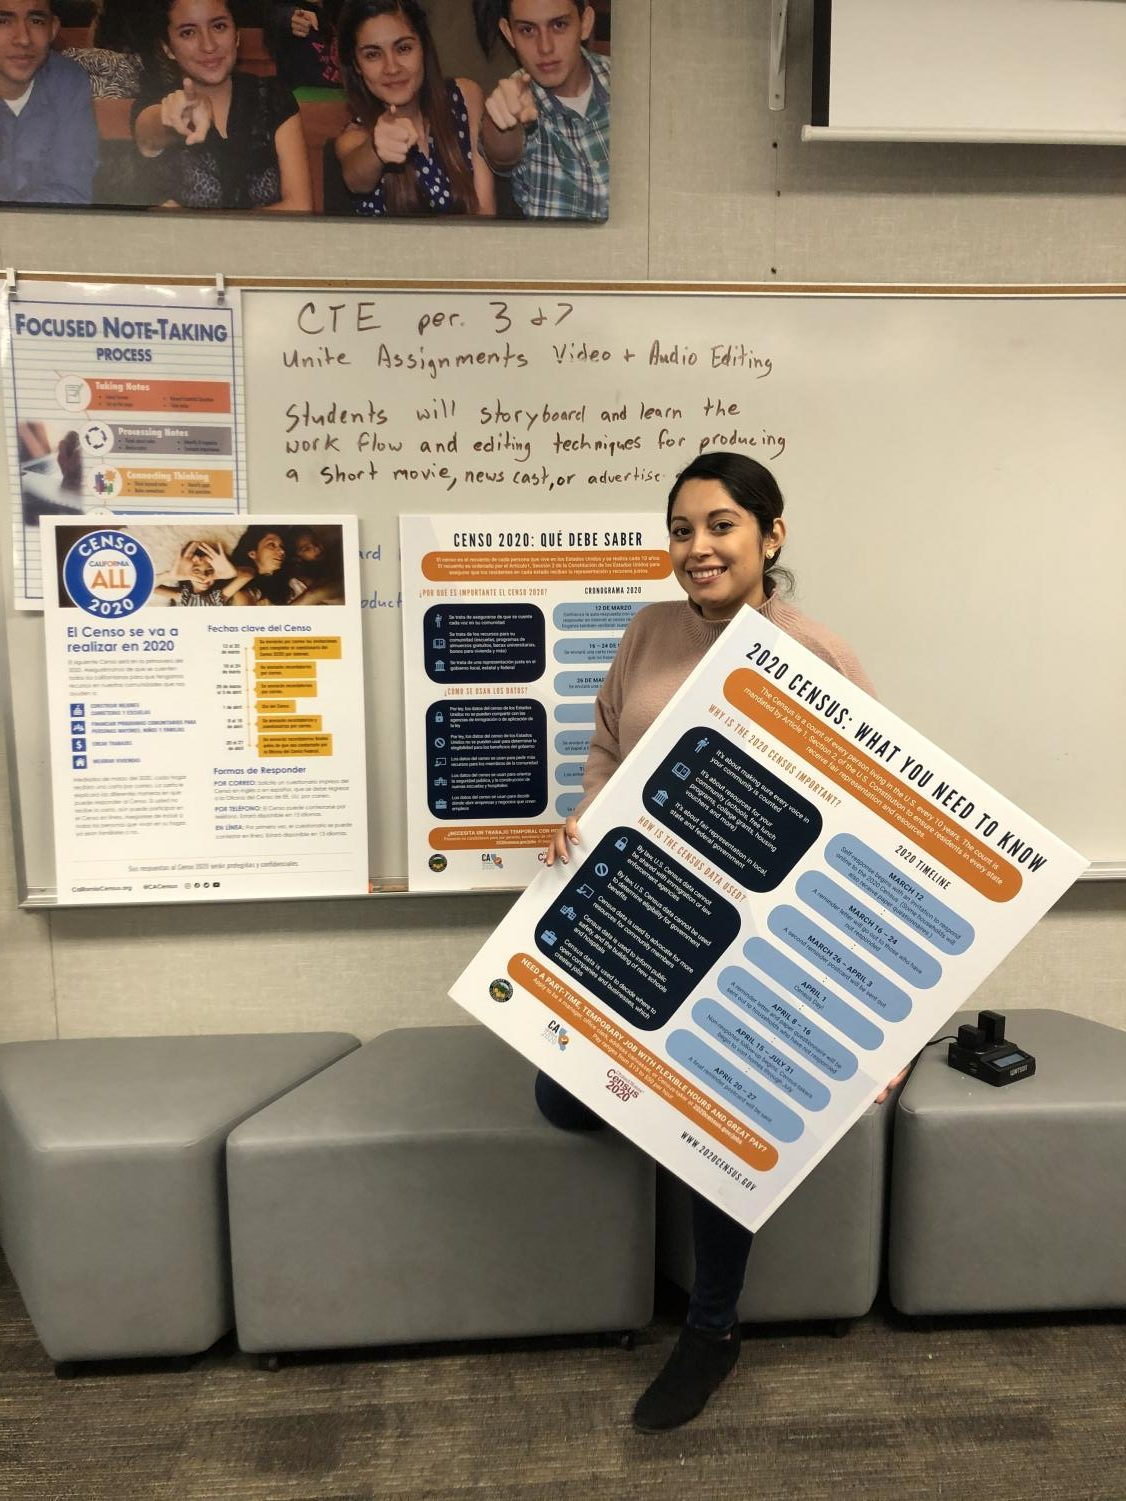 Mrs. Quiñonez gets ready to present information about the U.S. 2020 Census to Middle College High school parents.